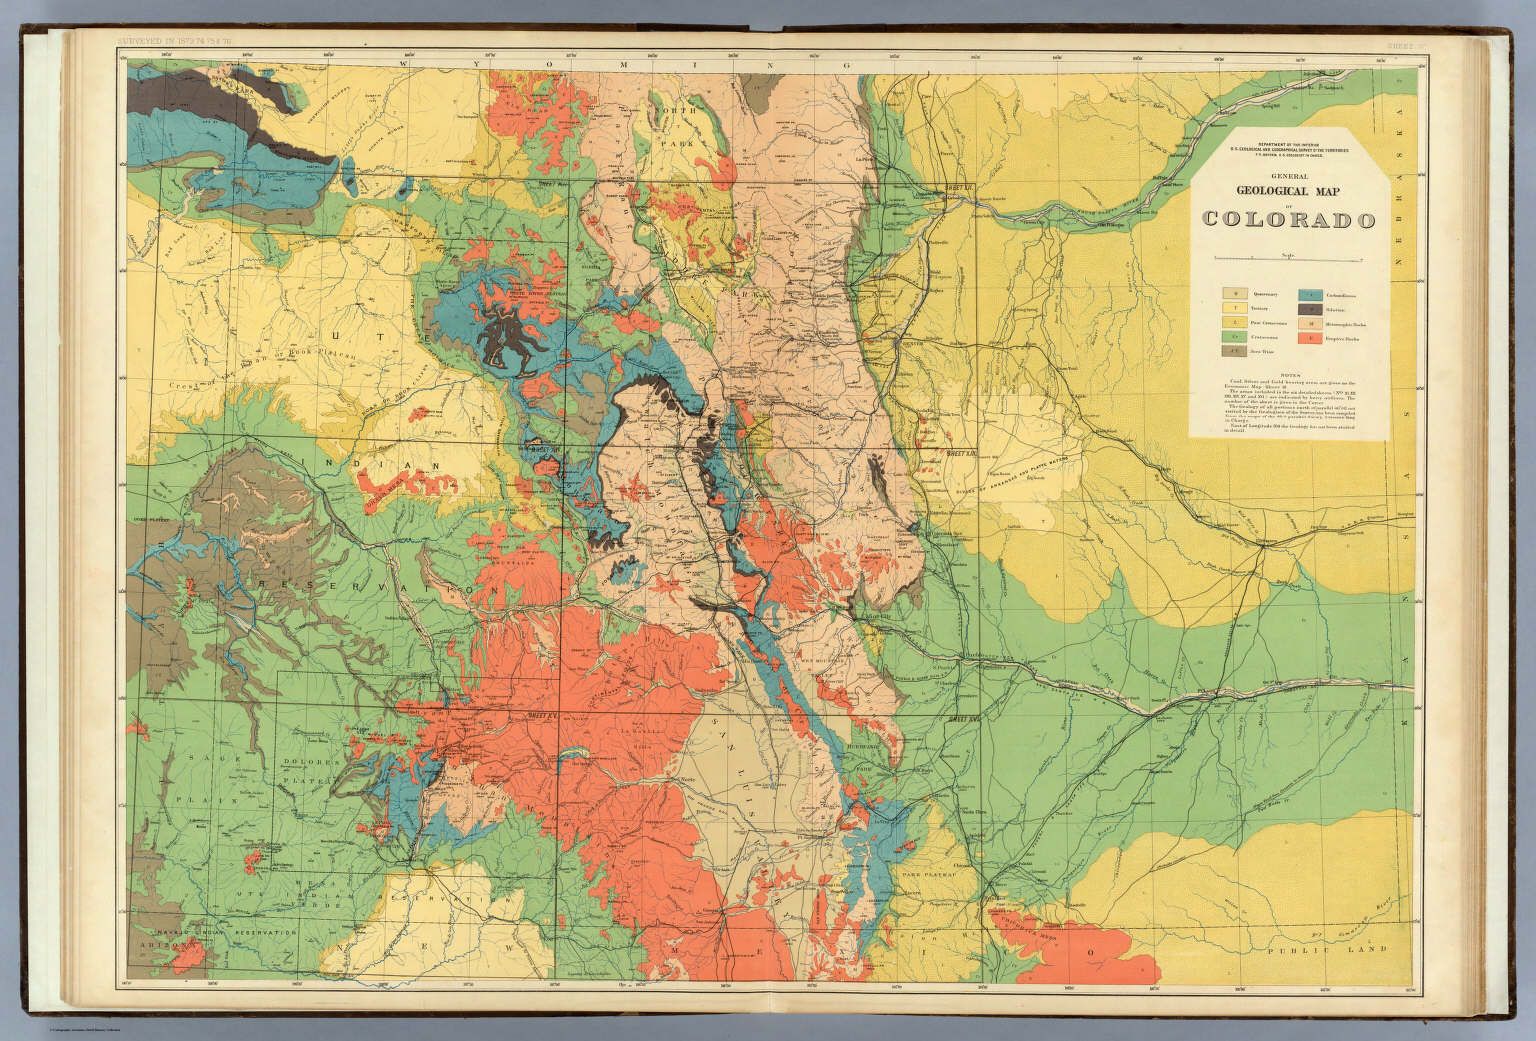 Geologic Map Of Colorado General Geological Map of Colorado. / Hayden, F.V. / 1881